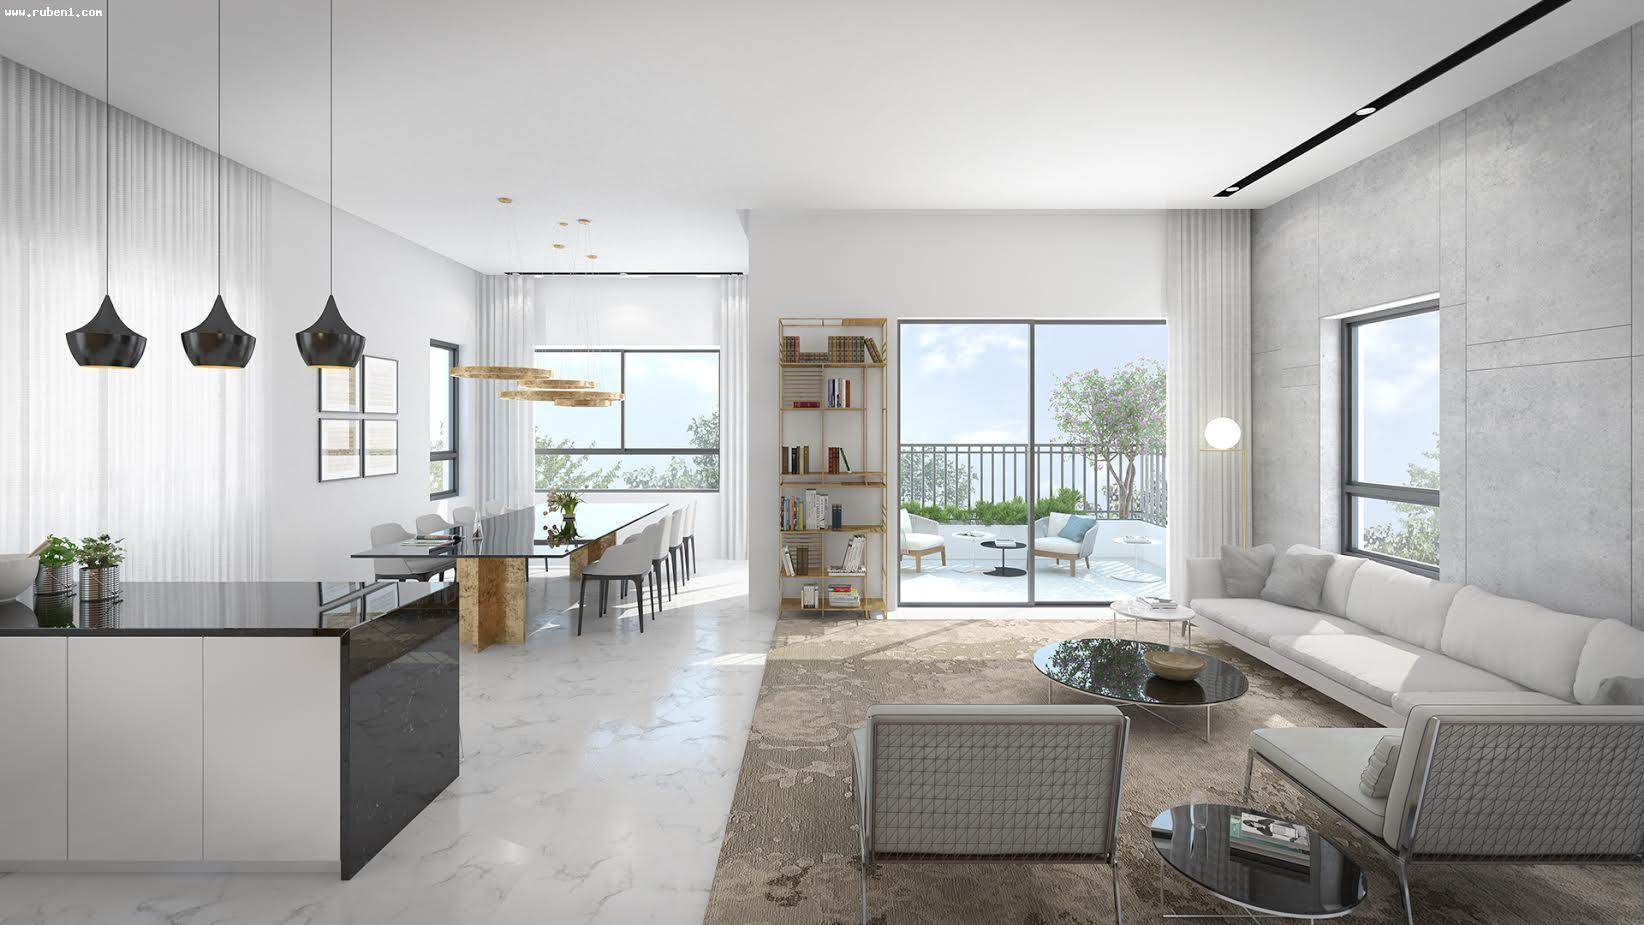 Real Estate Israel - Jerusalem Rehavia In the heart of the quality and desirable Rechavia neighborhood, the Rubens company is presenting... Rubens Real Estate